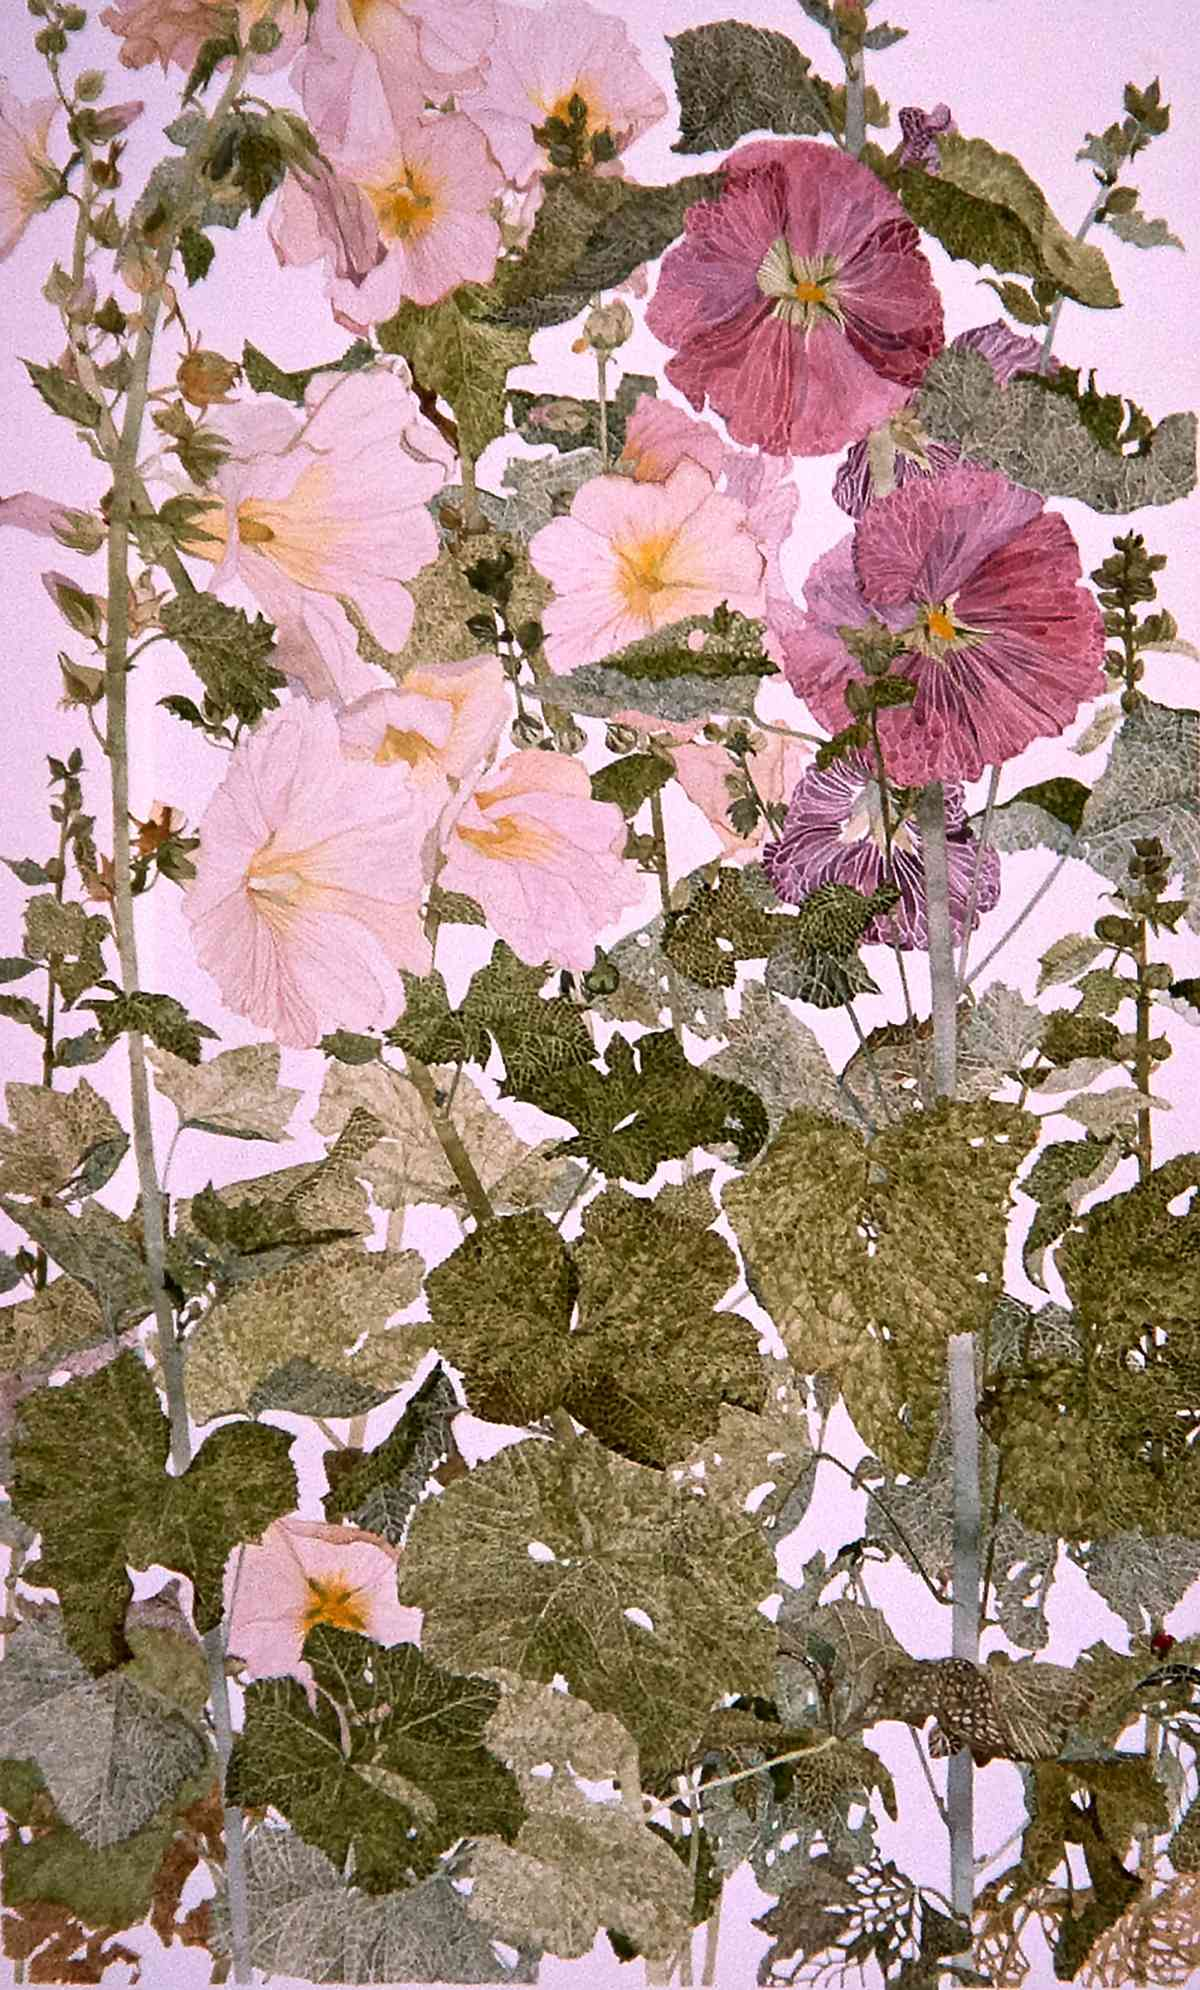 Hollyhocks, from Artistic Reflections on the Garden_ water colour_77x57cm